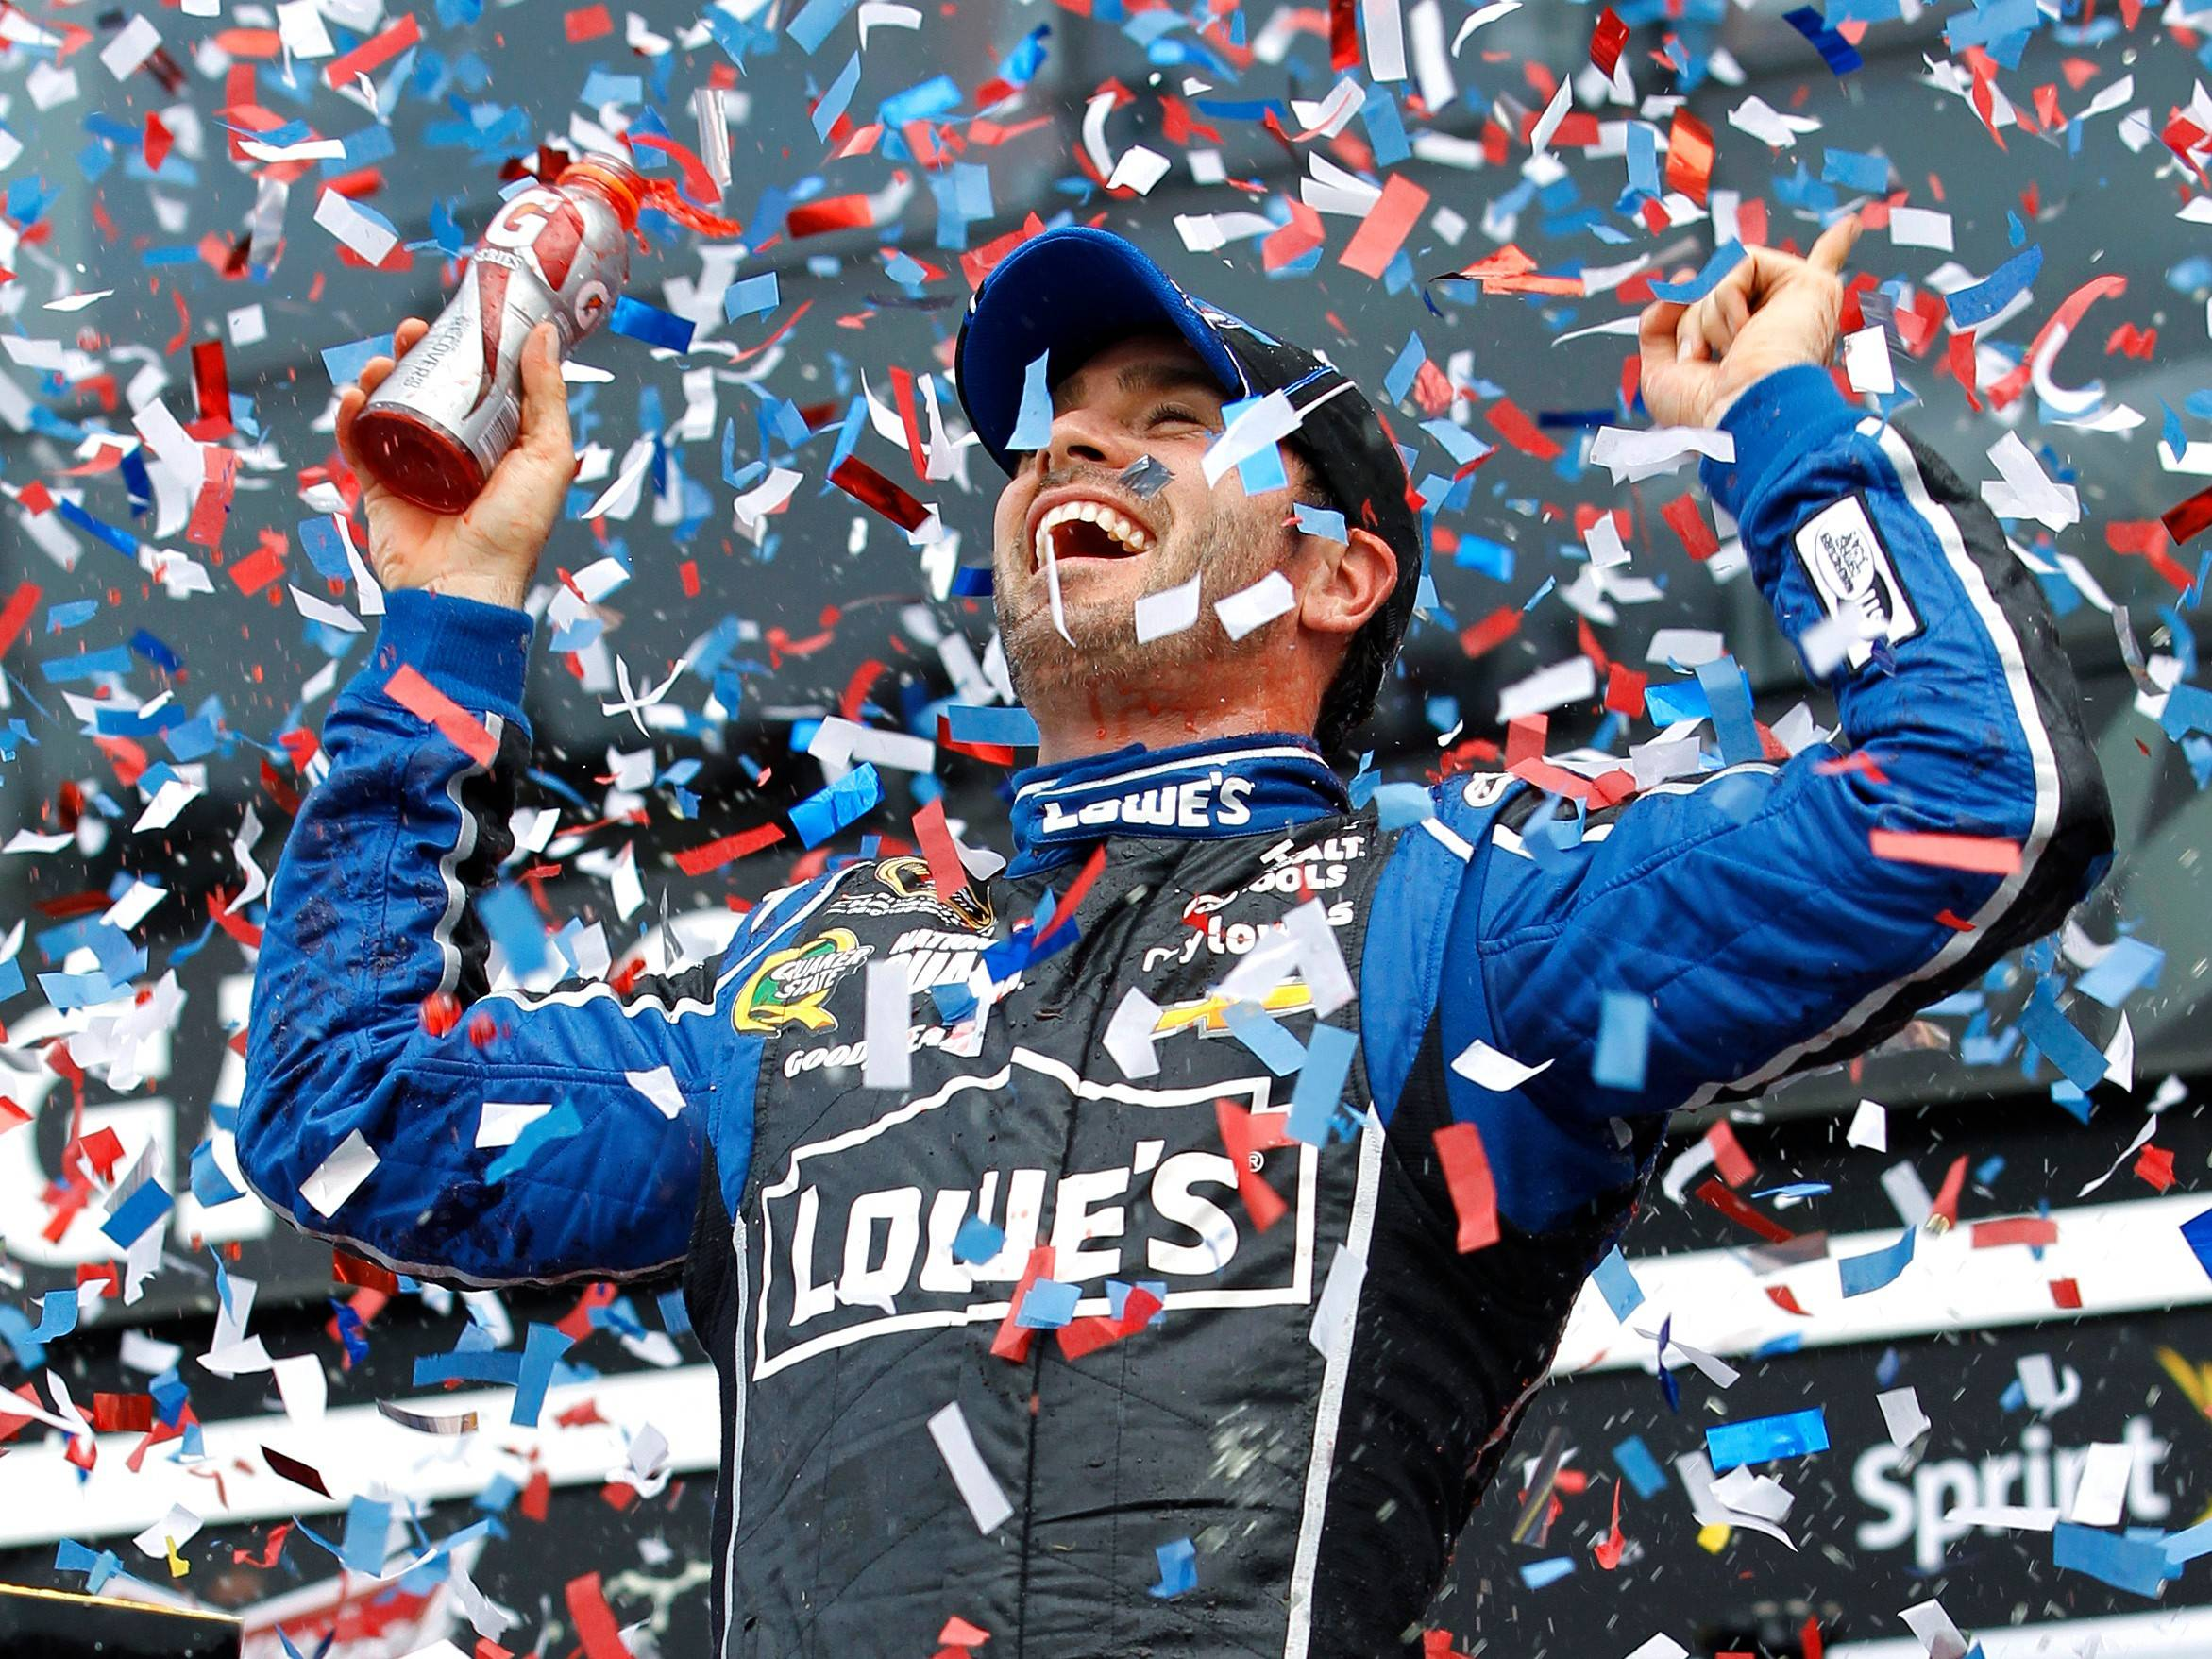 Jimmie Johnson hopes to repeat his 2013 Daytona win Sunday — and go on to tie the record of seven Sprint Cup championships in a year.